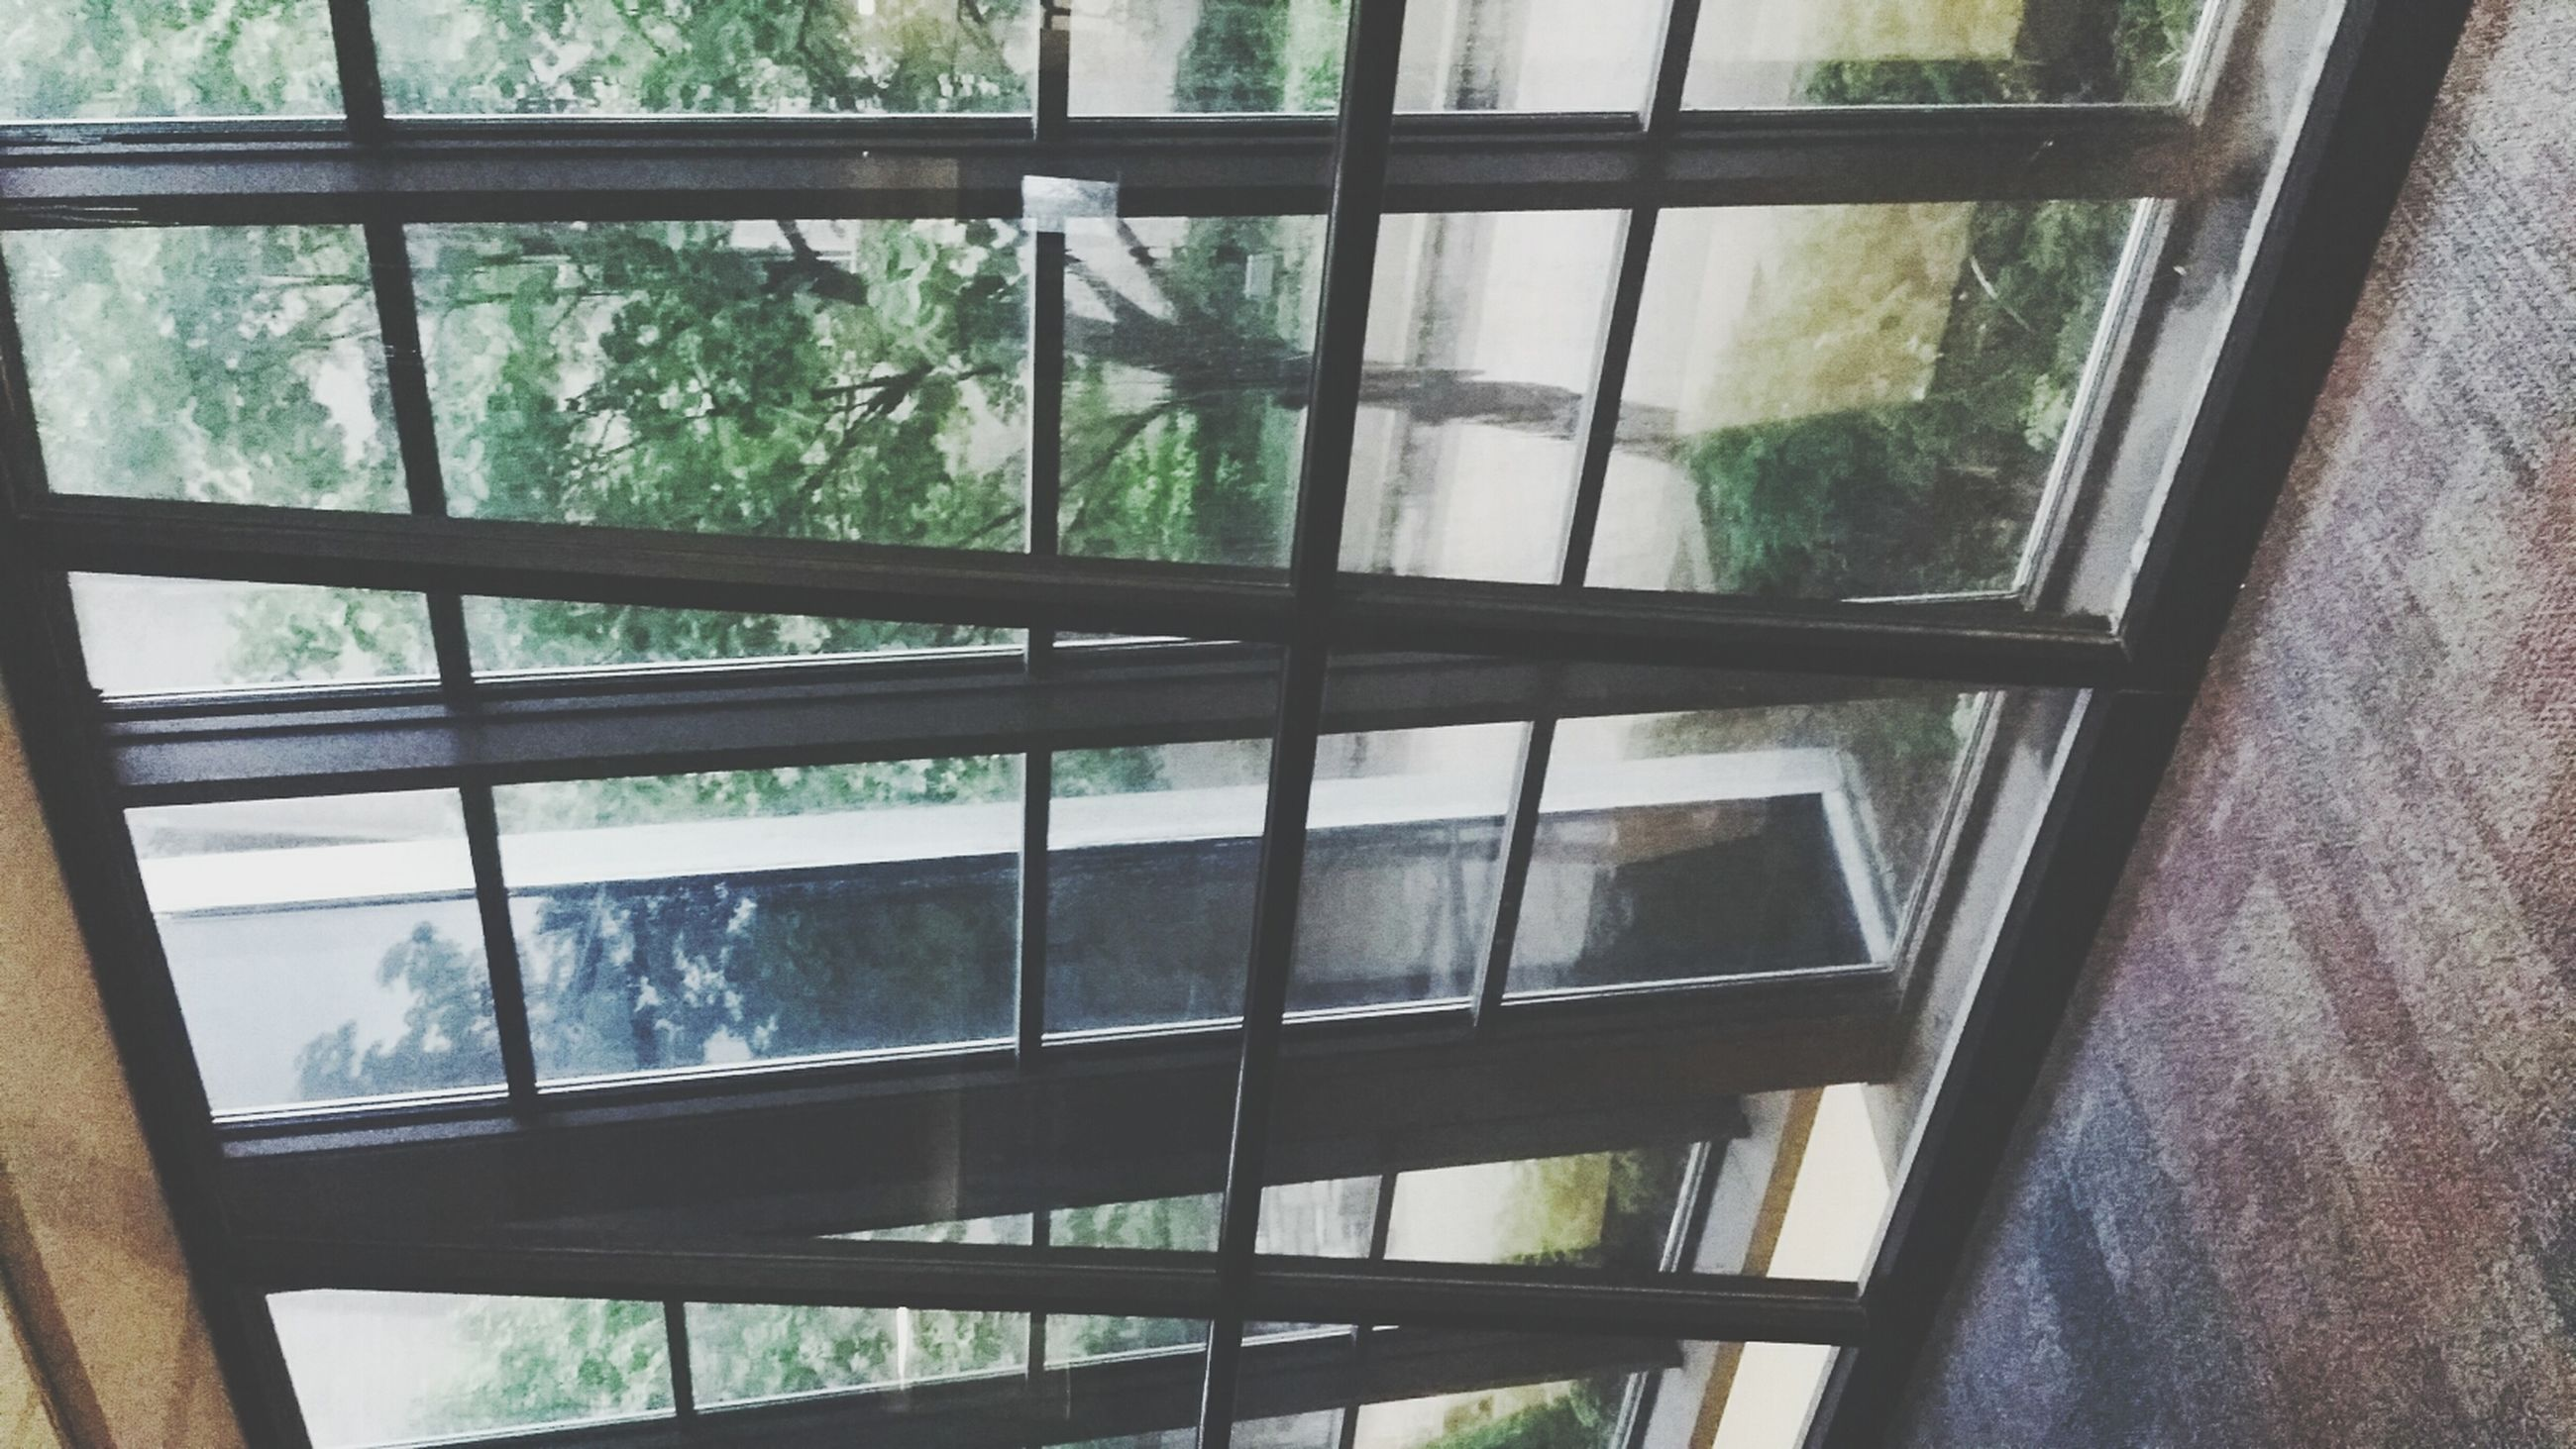 window, glass - material, indoors, transparent, built structure, architecture, glass, tree, reflection, day, house, window frame, looking through window, building exterior, curtain, no people, sunlight, pattern, full frame, open